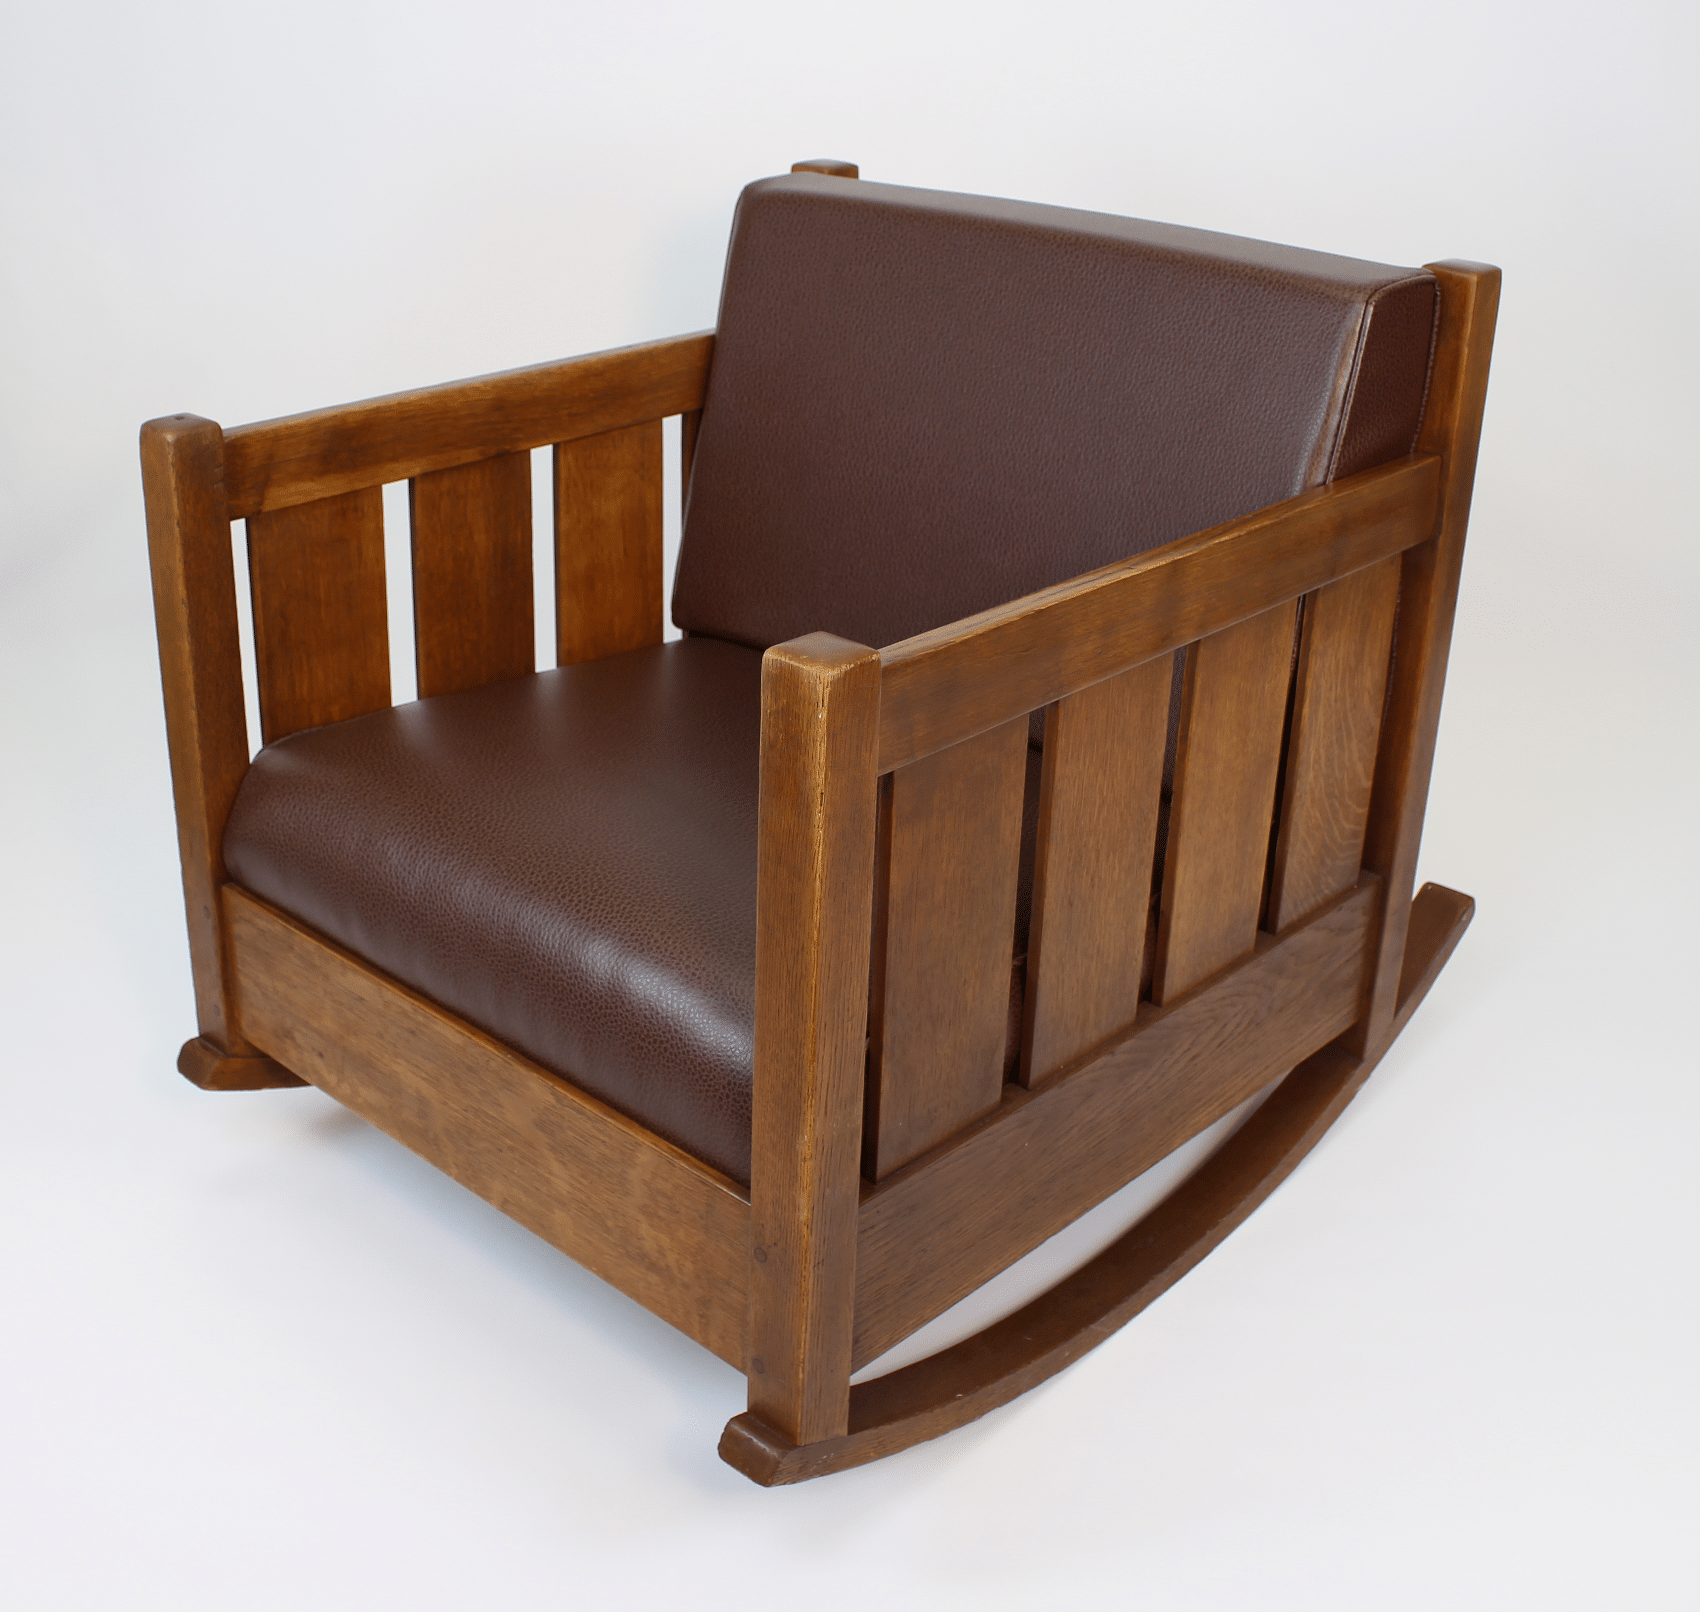 L Jg Stickley Cube Rocker No 429